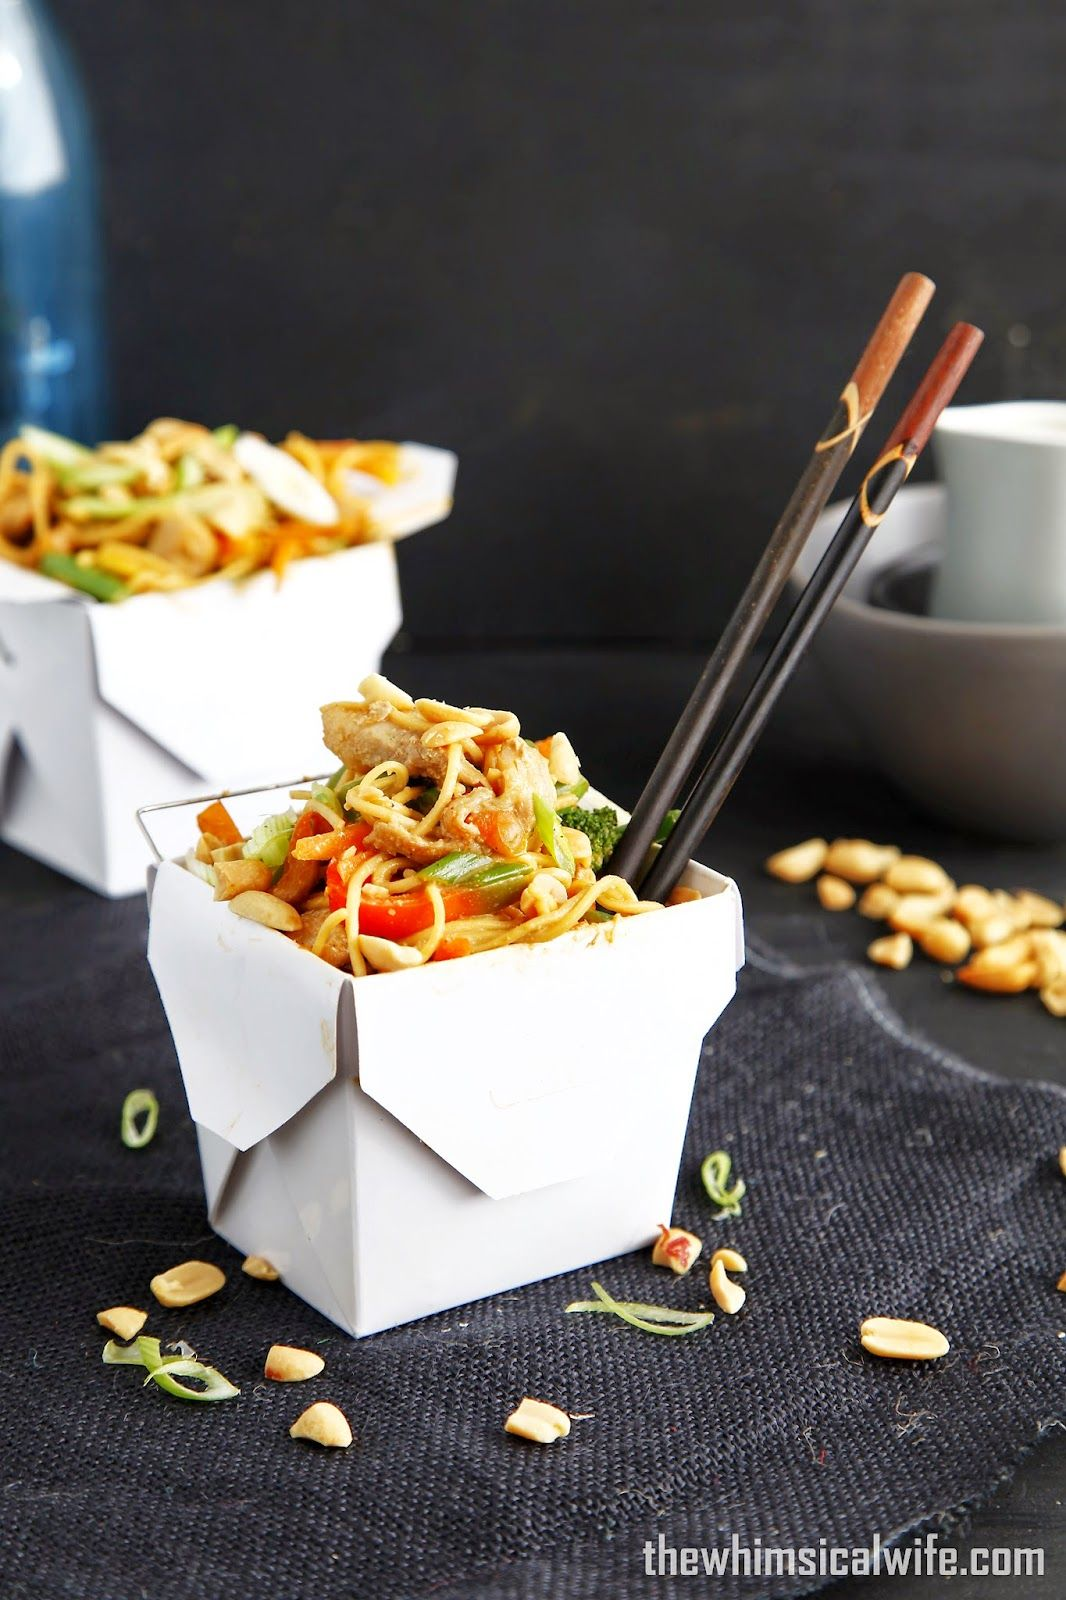 Wok In A Box Satay Pork Noodle Box The Whimsical Wife Cook Create Decorate Pork Noodles Spicy Recipes Satay